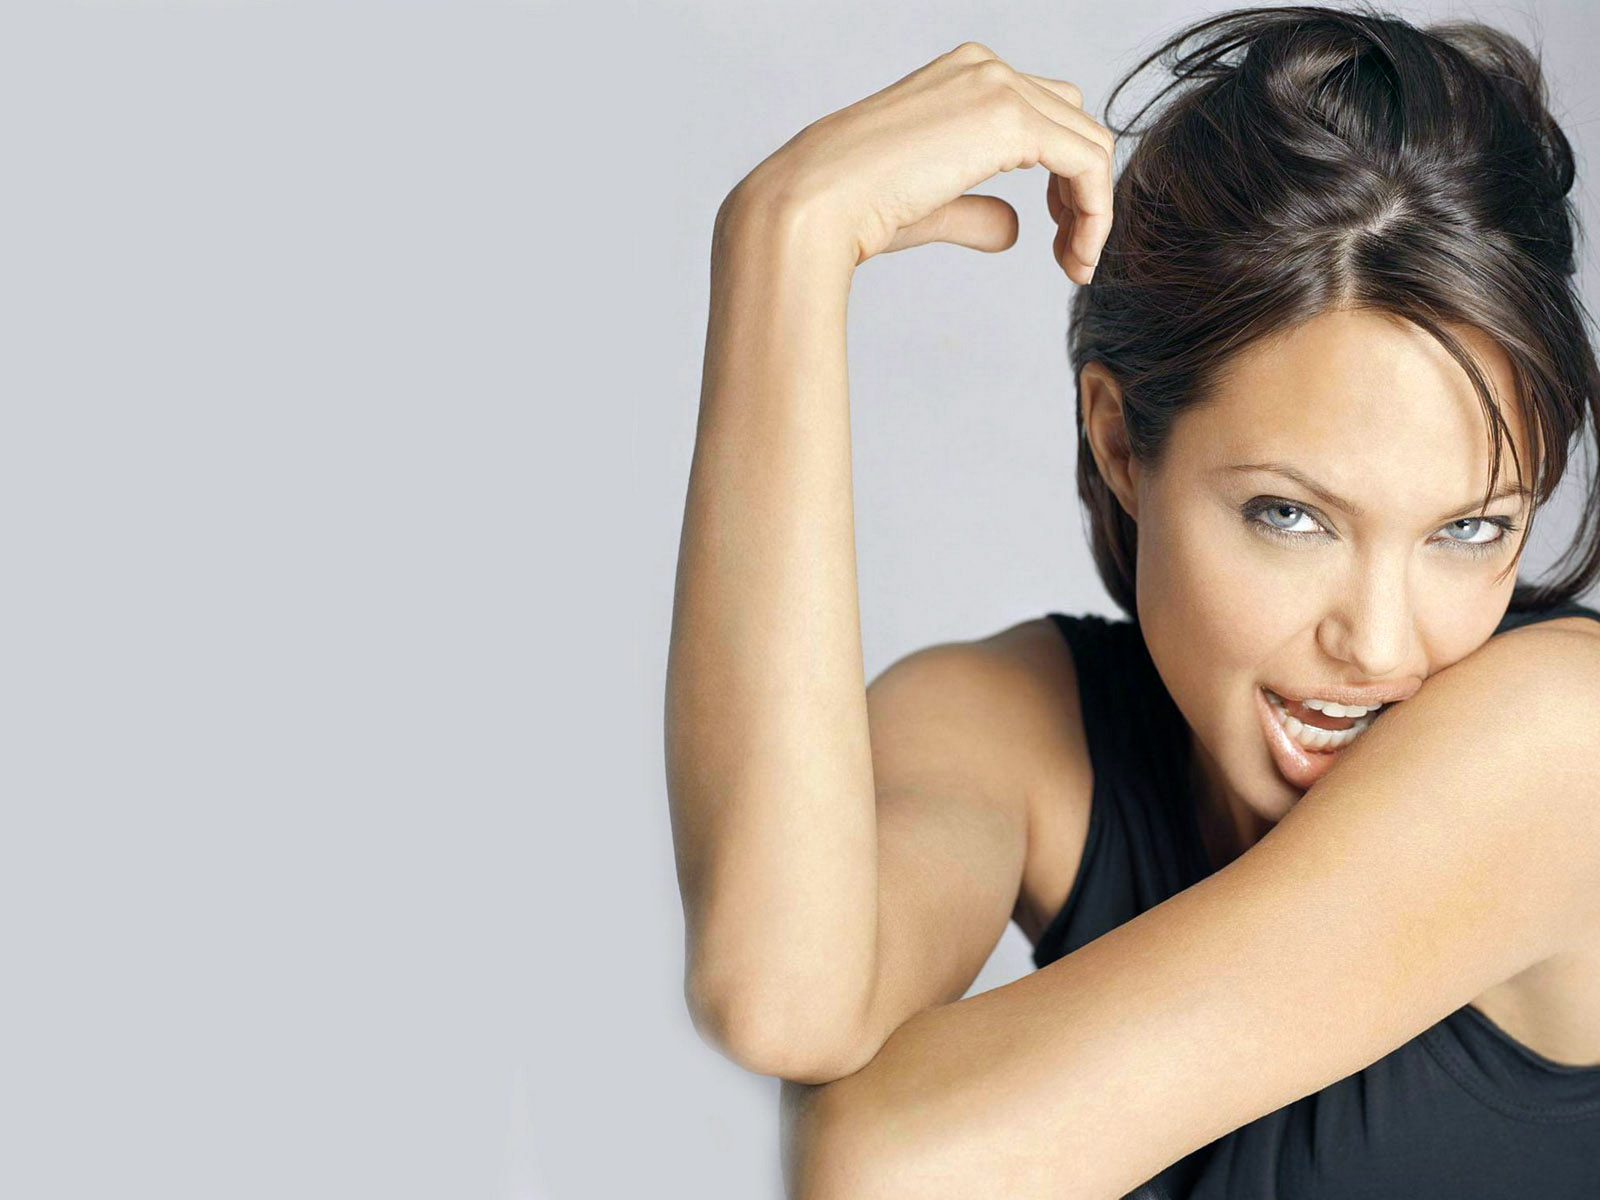 angelina jolie latest hot hd wallpapers 2013 its all